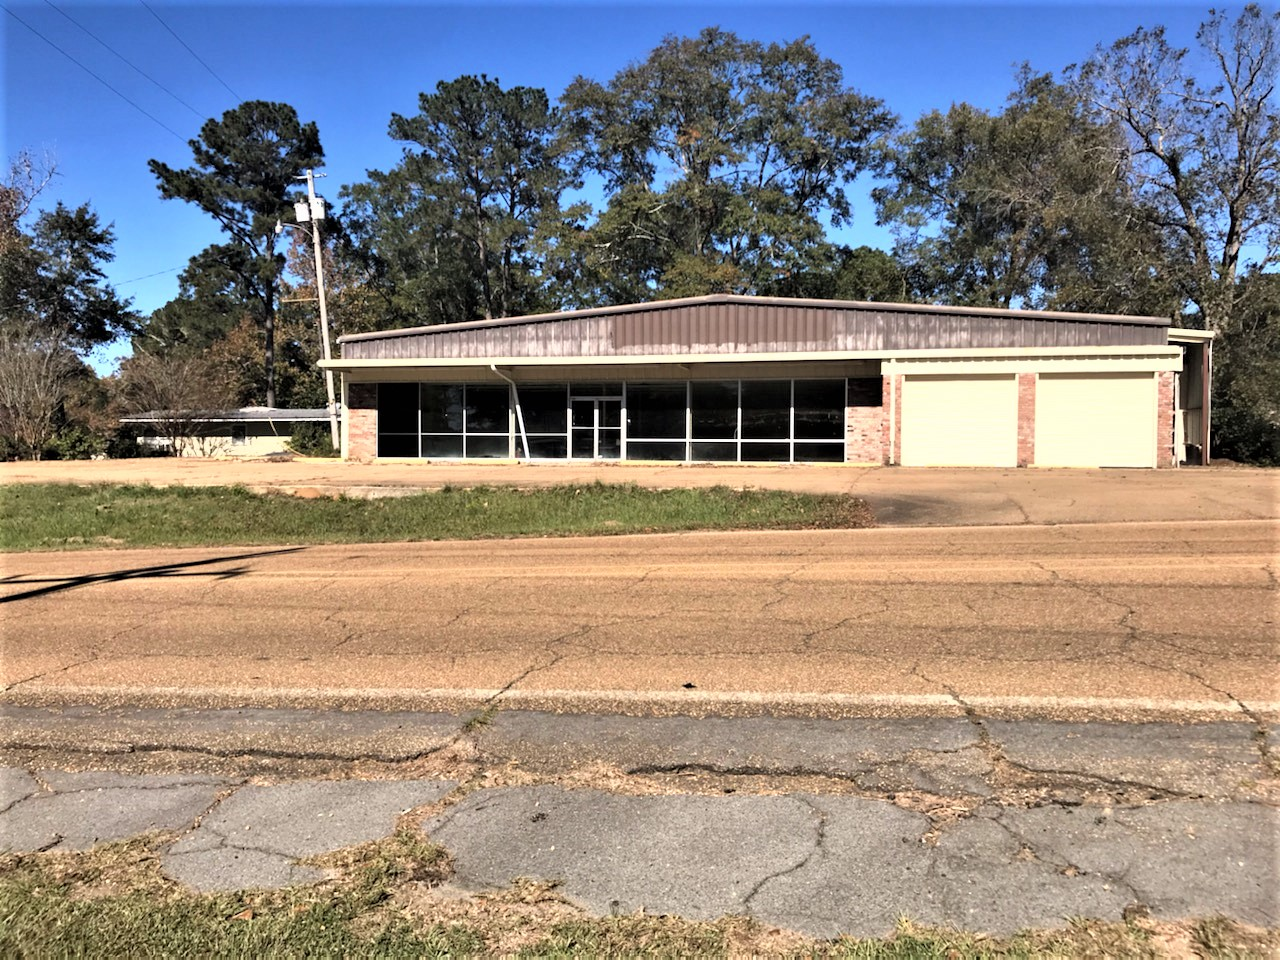 801 E. Main Street, Meadville, Mississippi 39653, ,Retail,For Sale,801 E. Main Street,1029